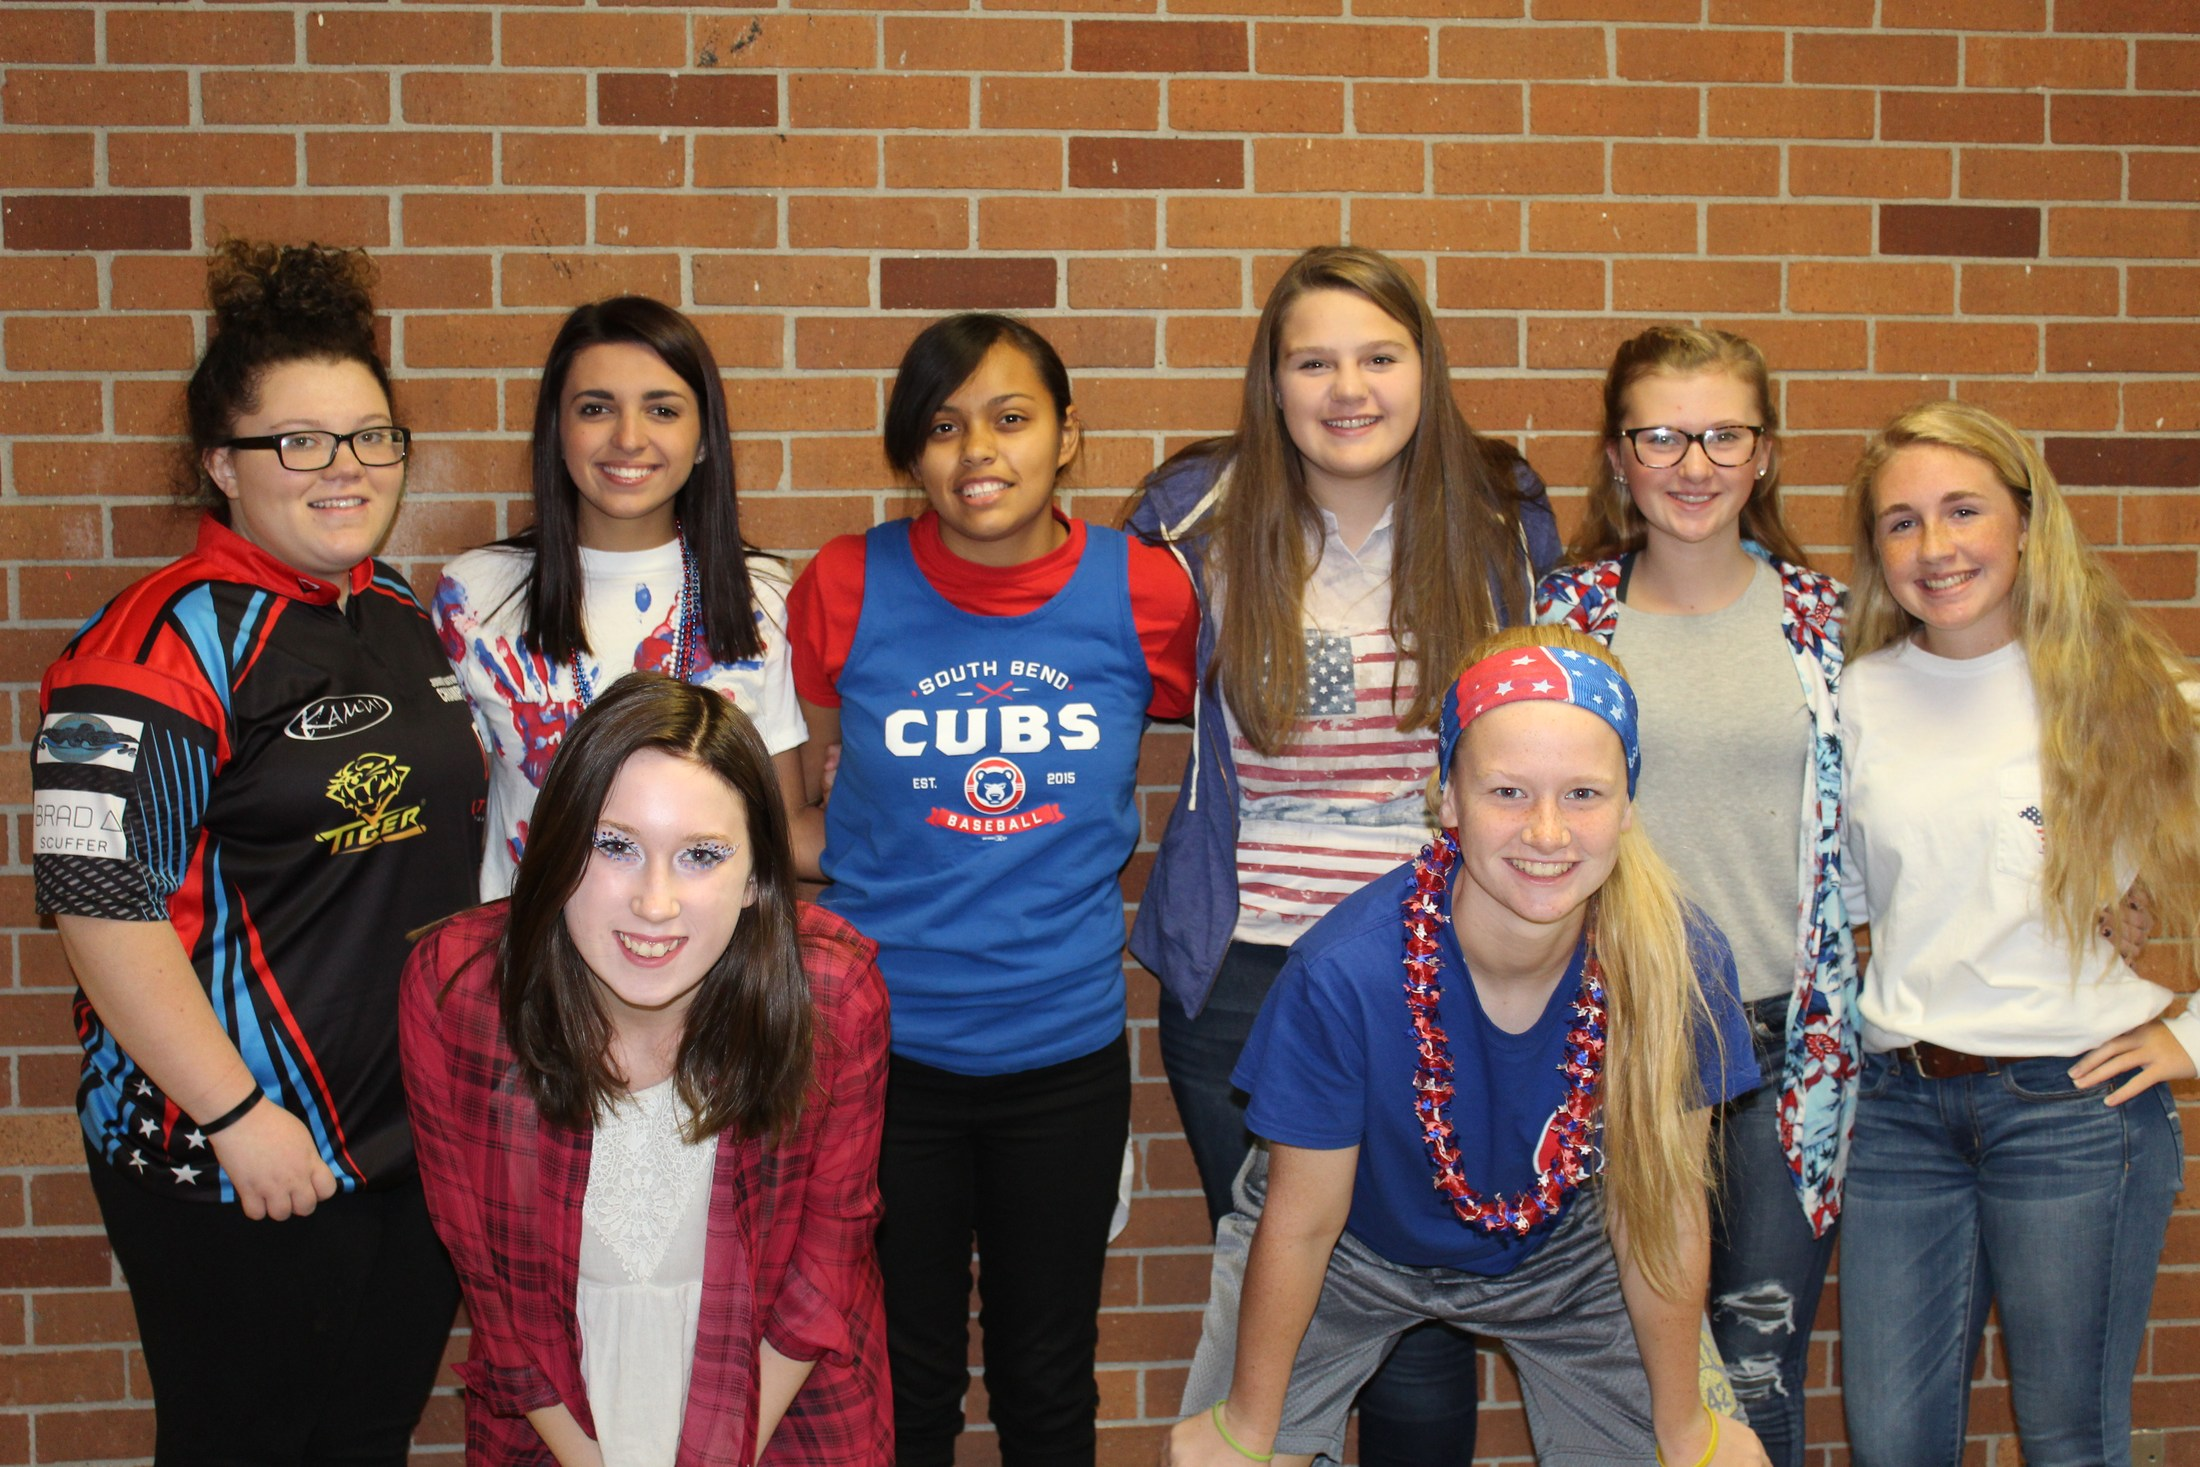 Students dressing for Red White and Blue day